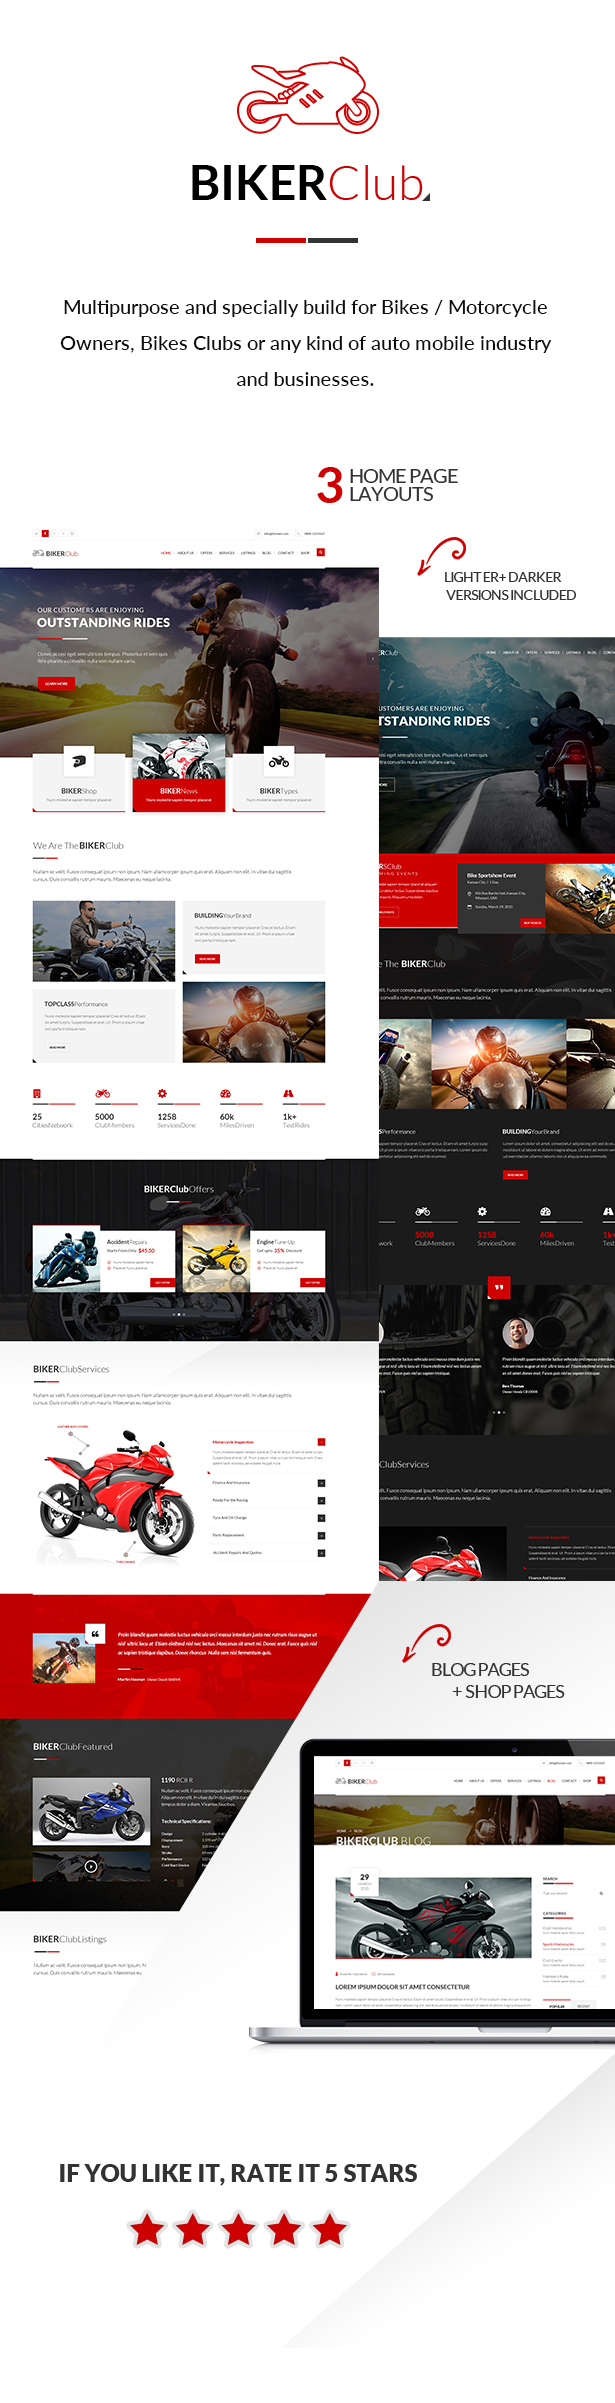 Biker Club - WordPress theme - 1